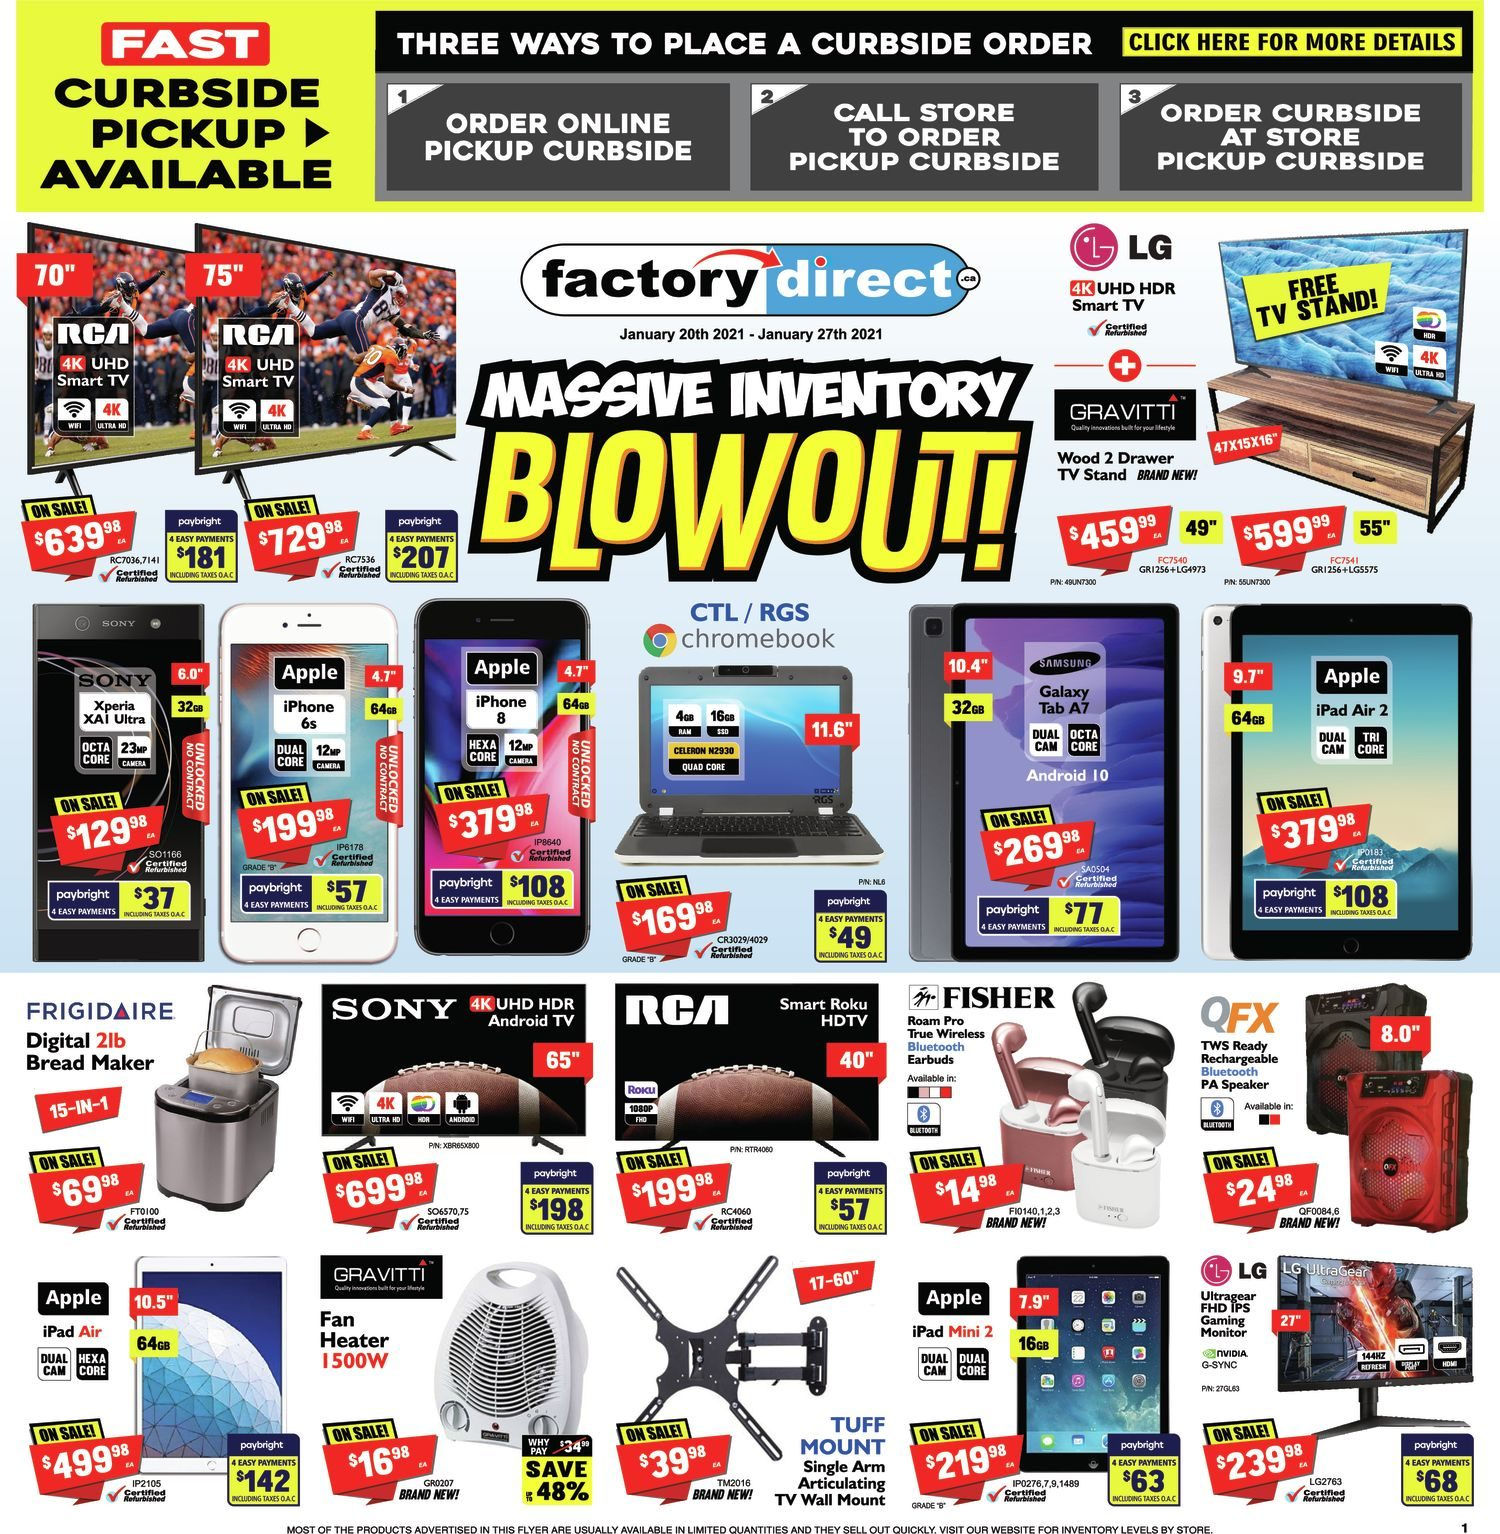 FactoryDirect - Massive Inventory Blowout!